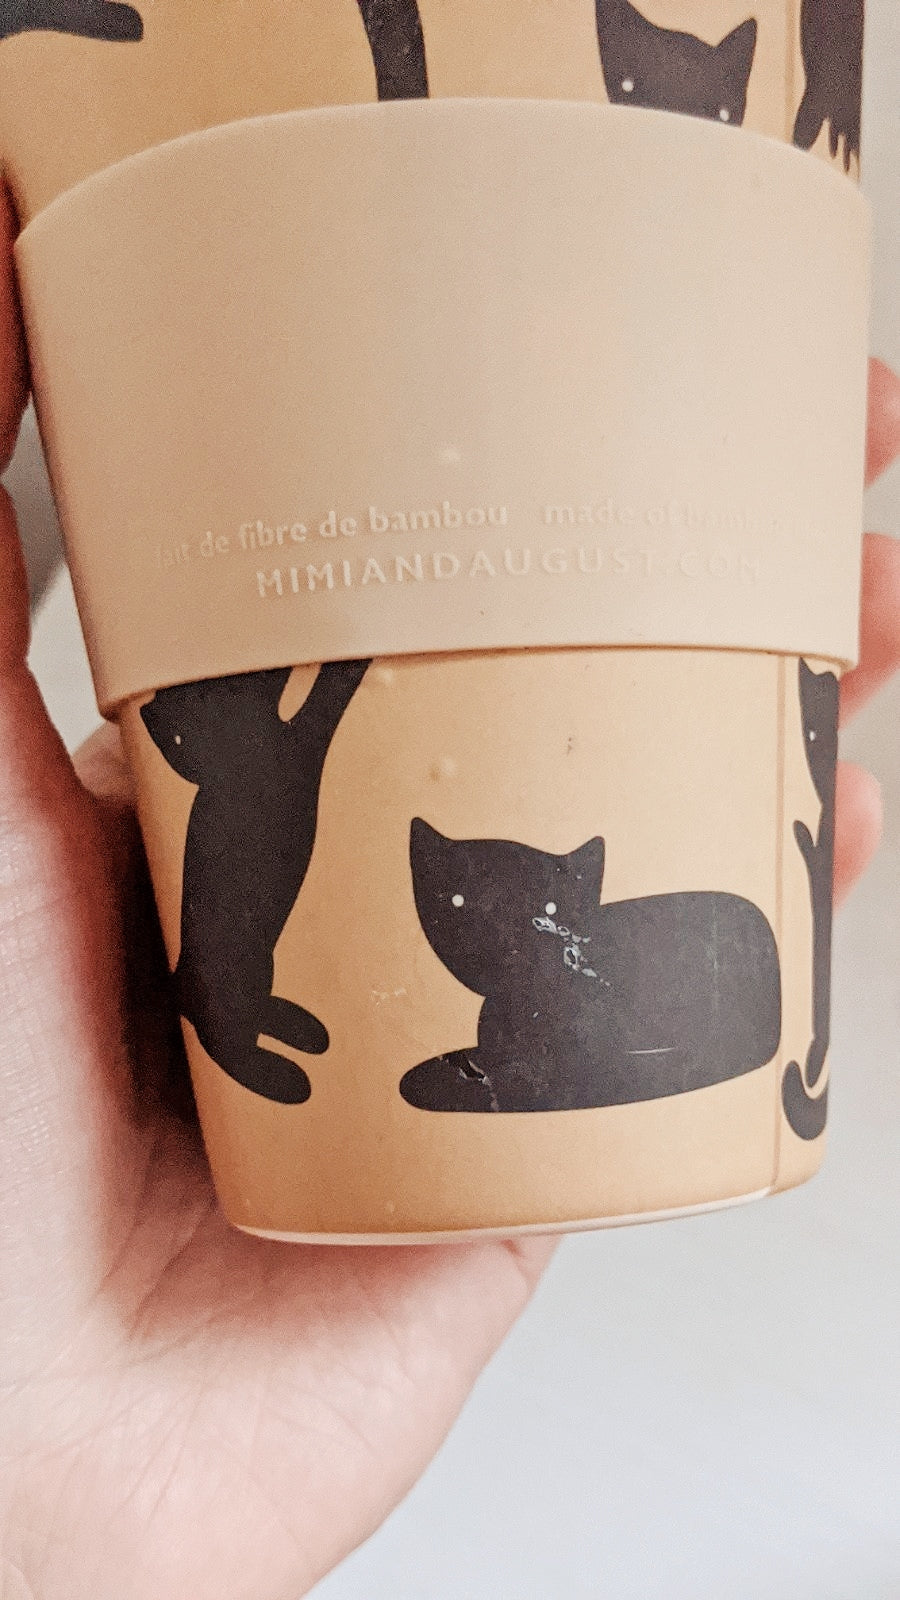 Pepito reusable coffee cup defect by mimi & august